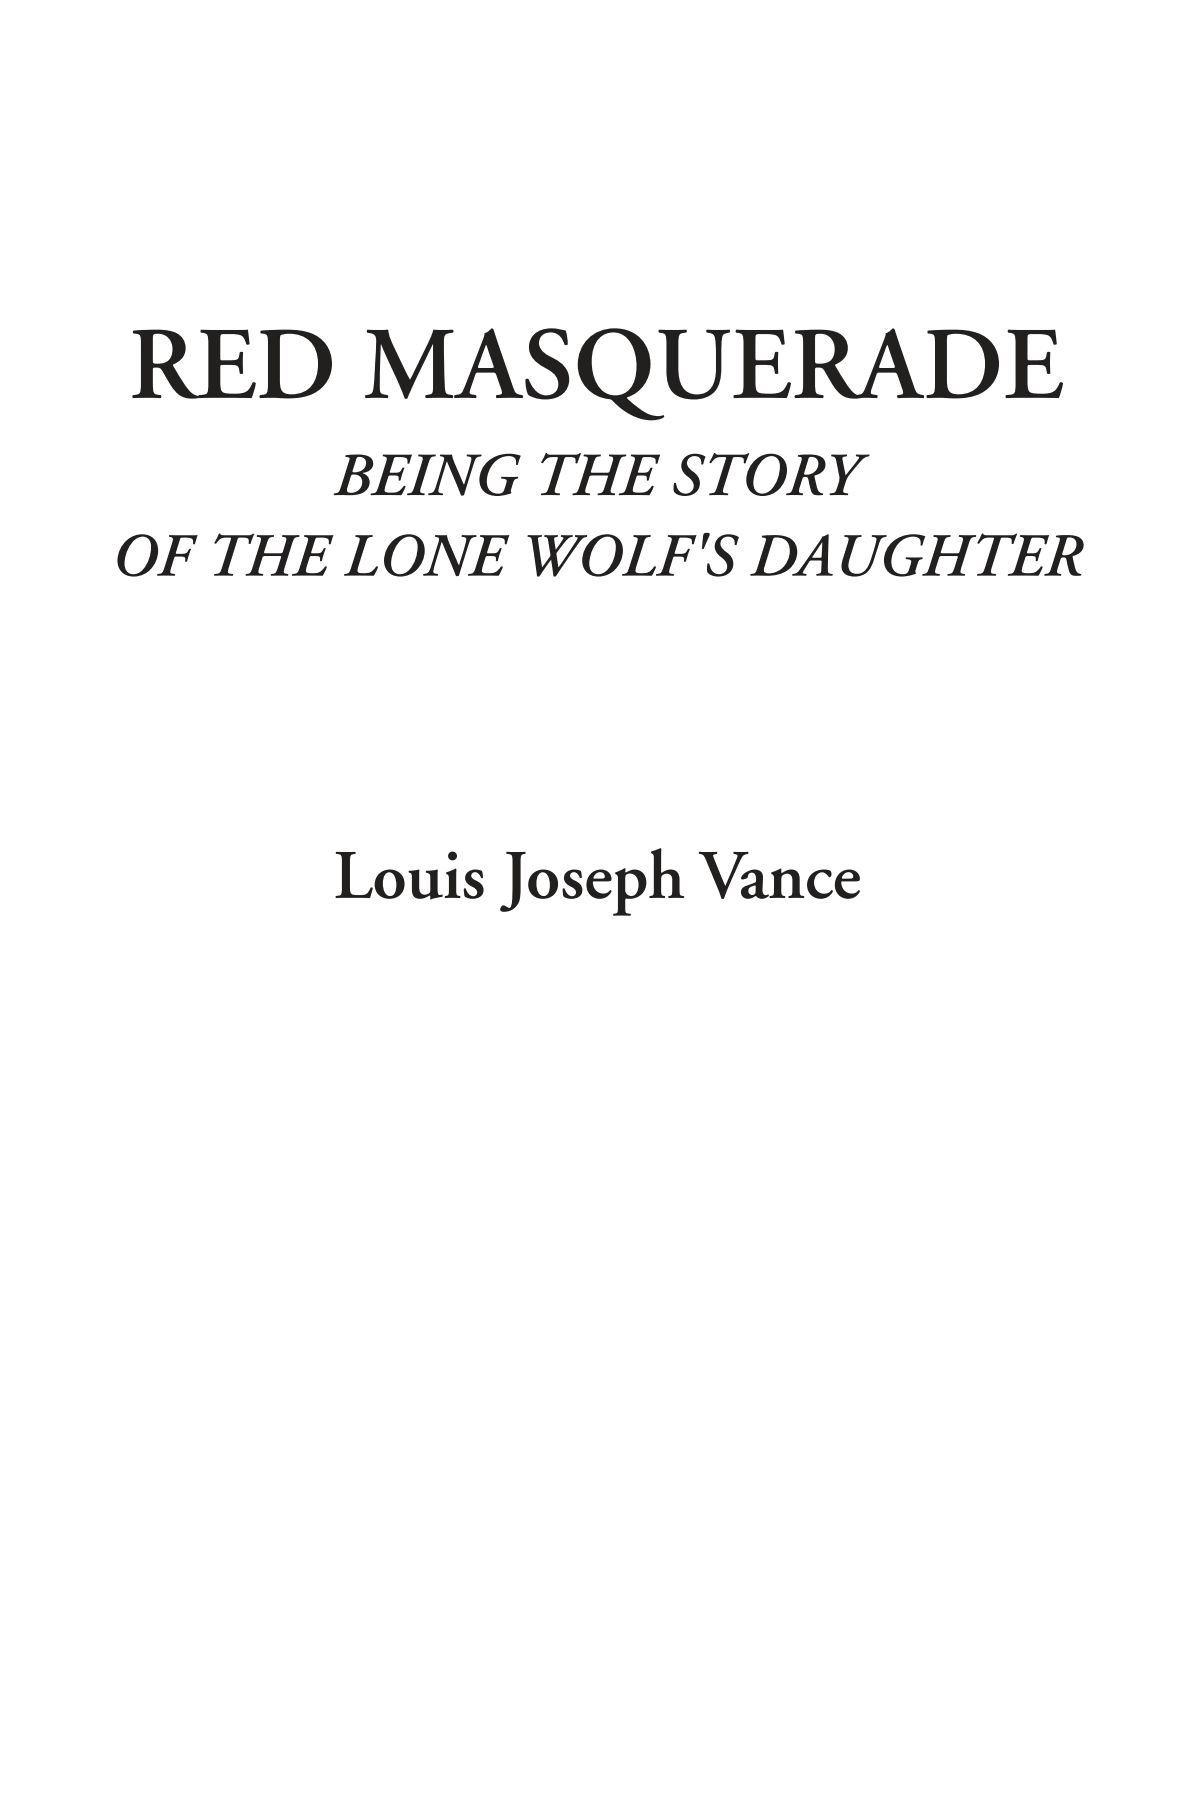 Red Masquerade (Being the Story of the Lone Wolf's Daughter) PDF